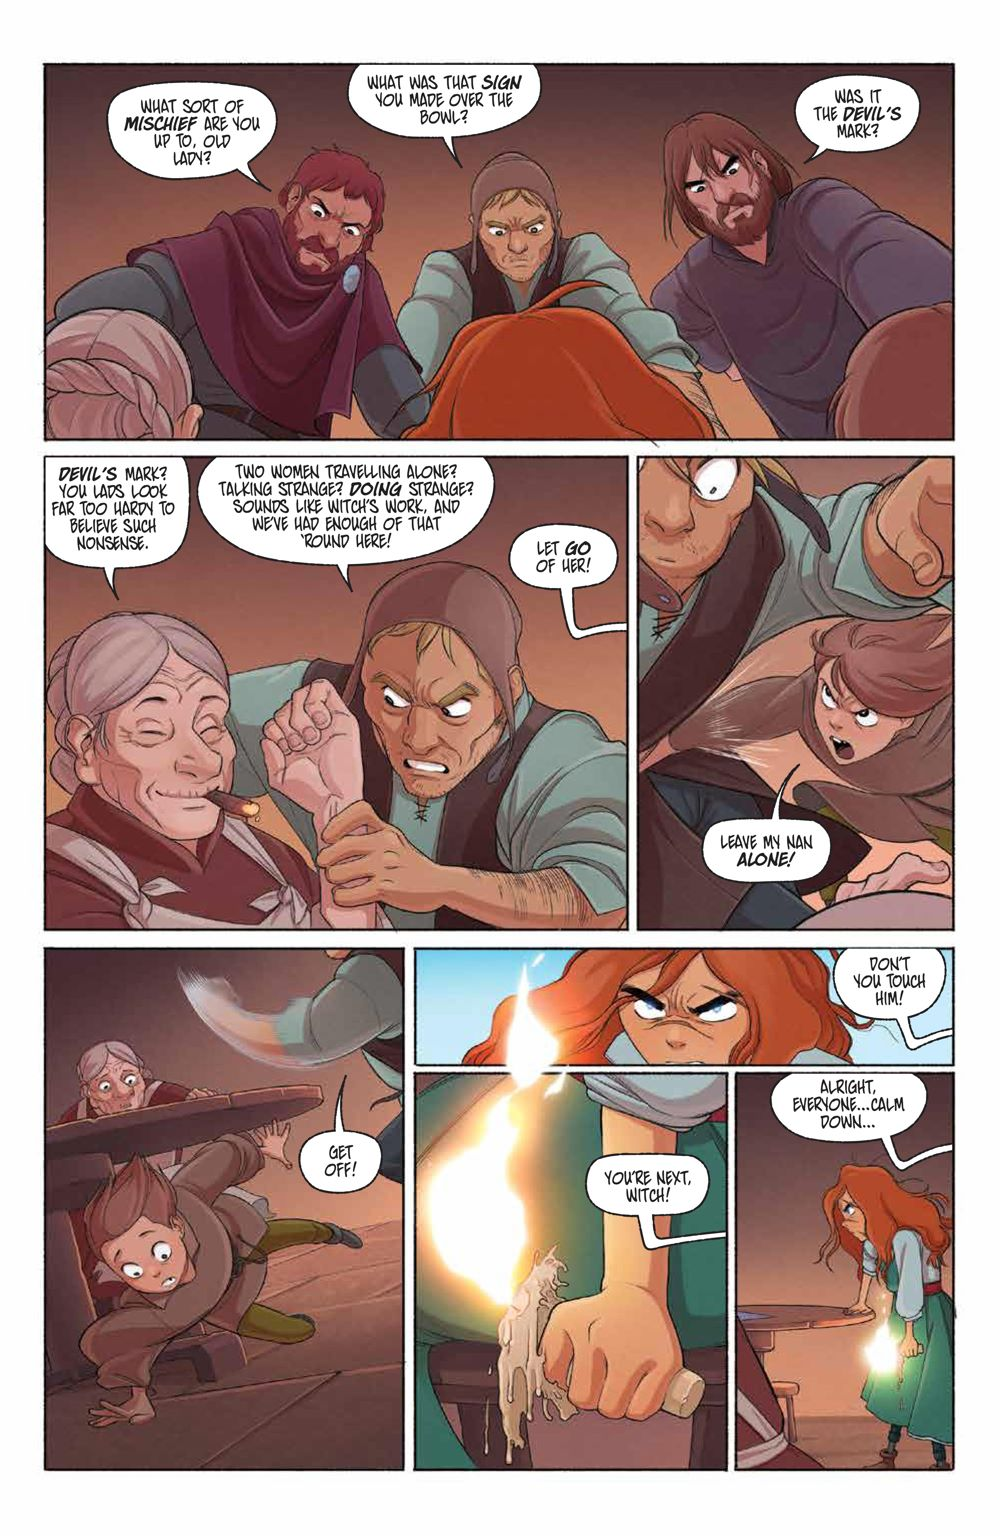 LastWitch_004_PRESS_5 ComicList Previews: THE LAST WITCH #4